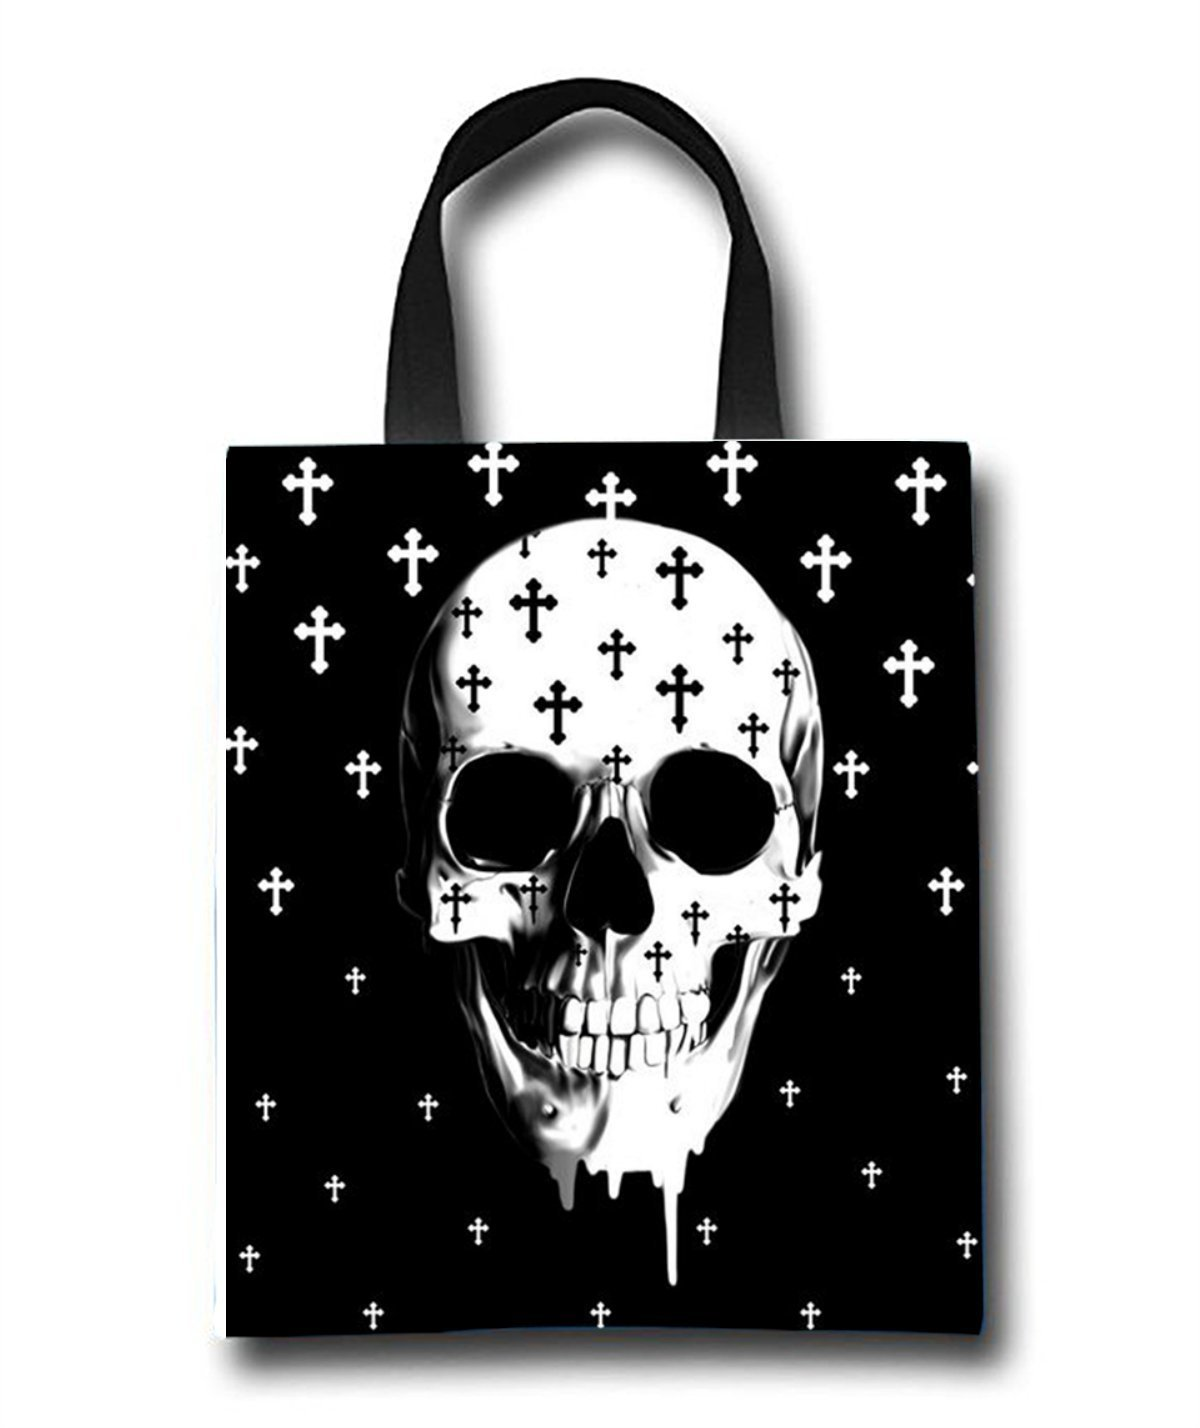 Gothic Skull Beach Tote Bag - Toy Tote Bag - Large Lightweight Market, Grocery & Picnic